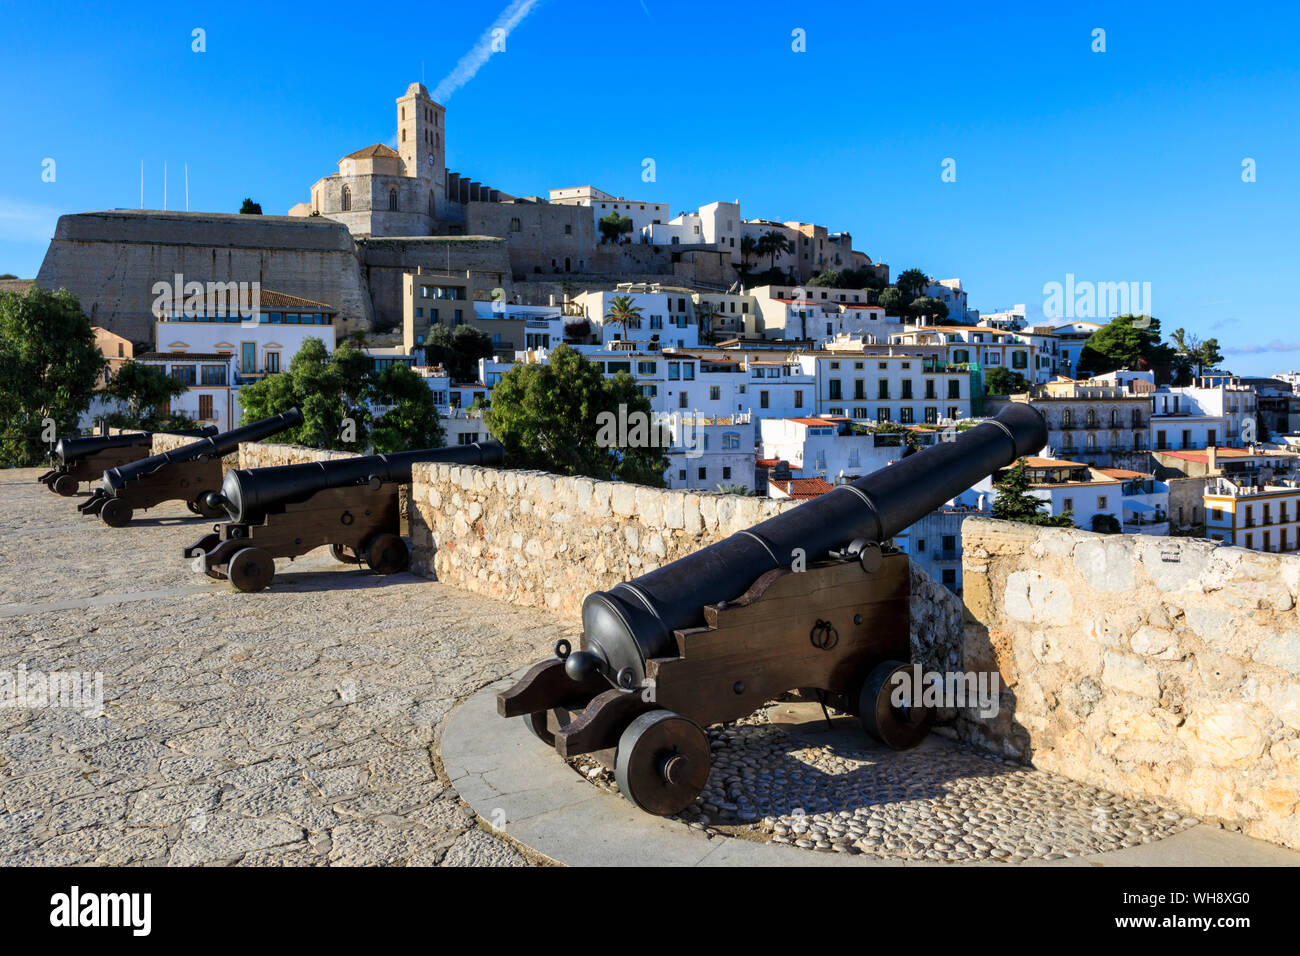 Bastion, cannons, ramparts, cathedral, Dalt Vila old town, UNESCO World Heritage Site, Ibiza Town, Balearic Islands, Spain, Mediterranean, Europe Stock Photo